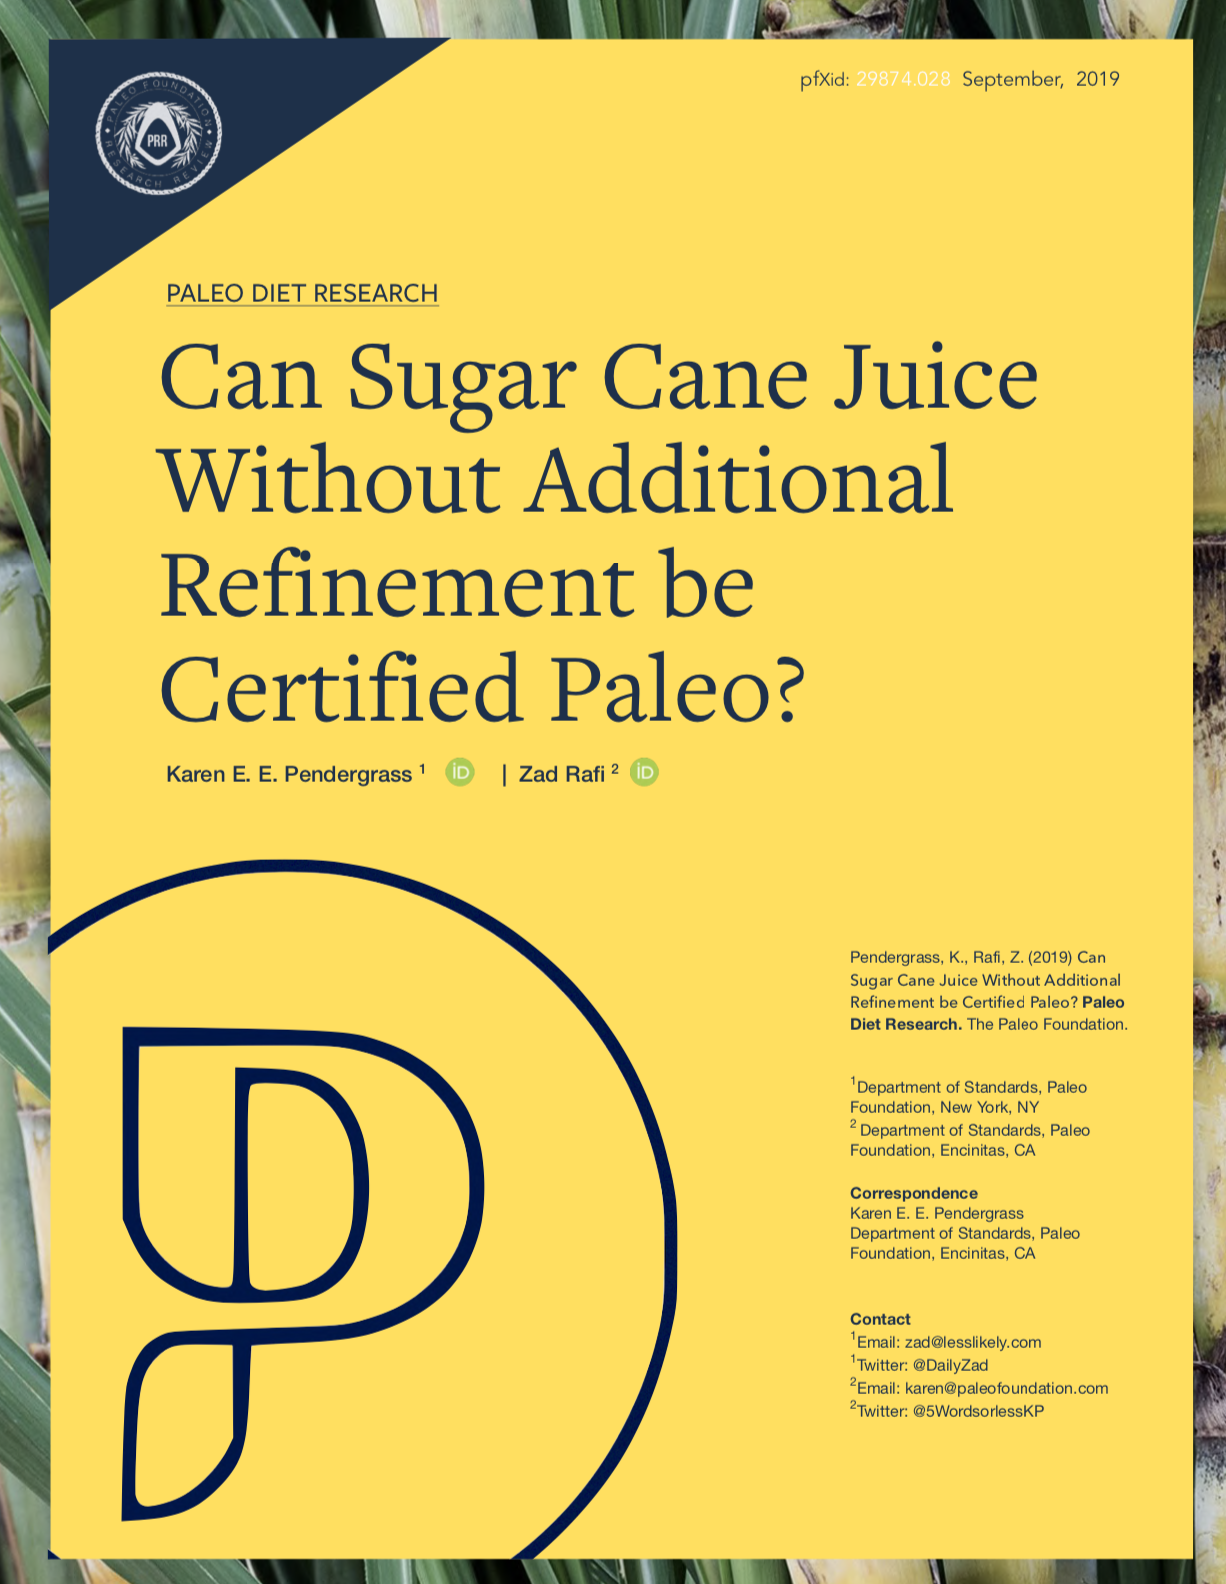 Can Sugar Cane Juice without refinement be Certified Paleo by Karen Pendergrass